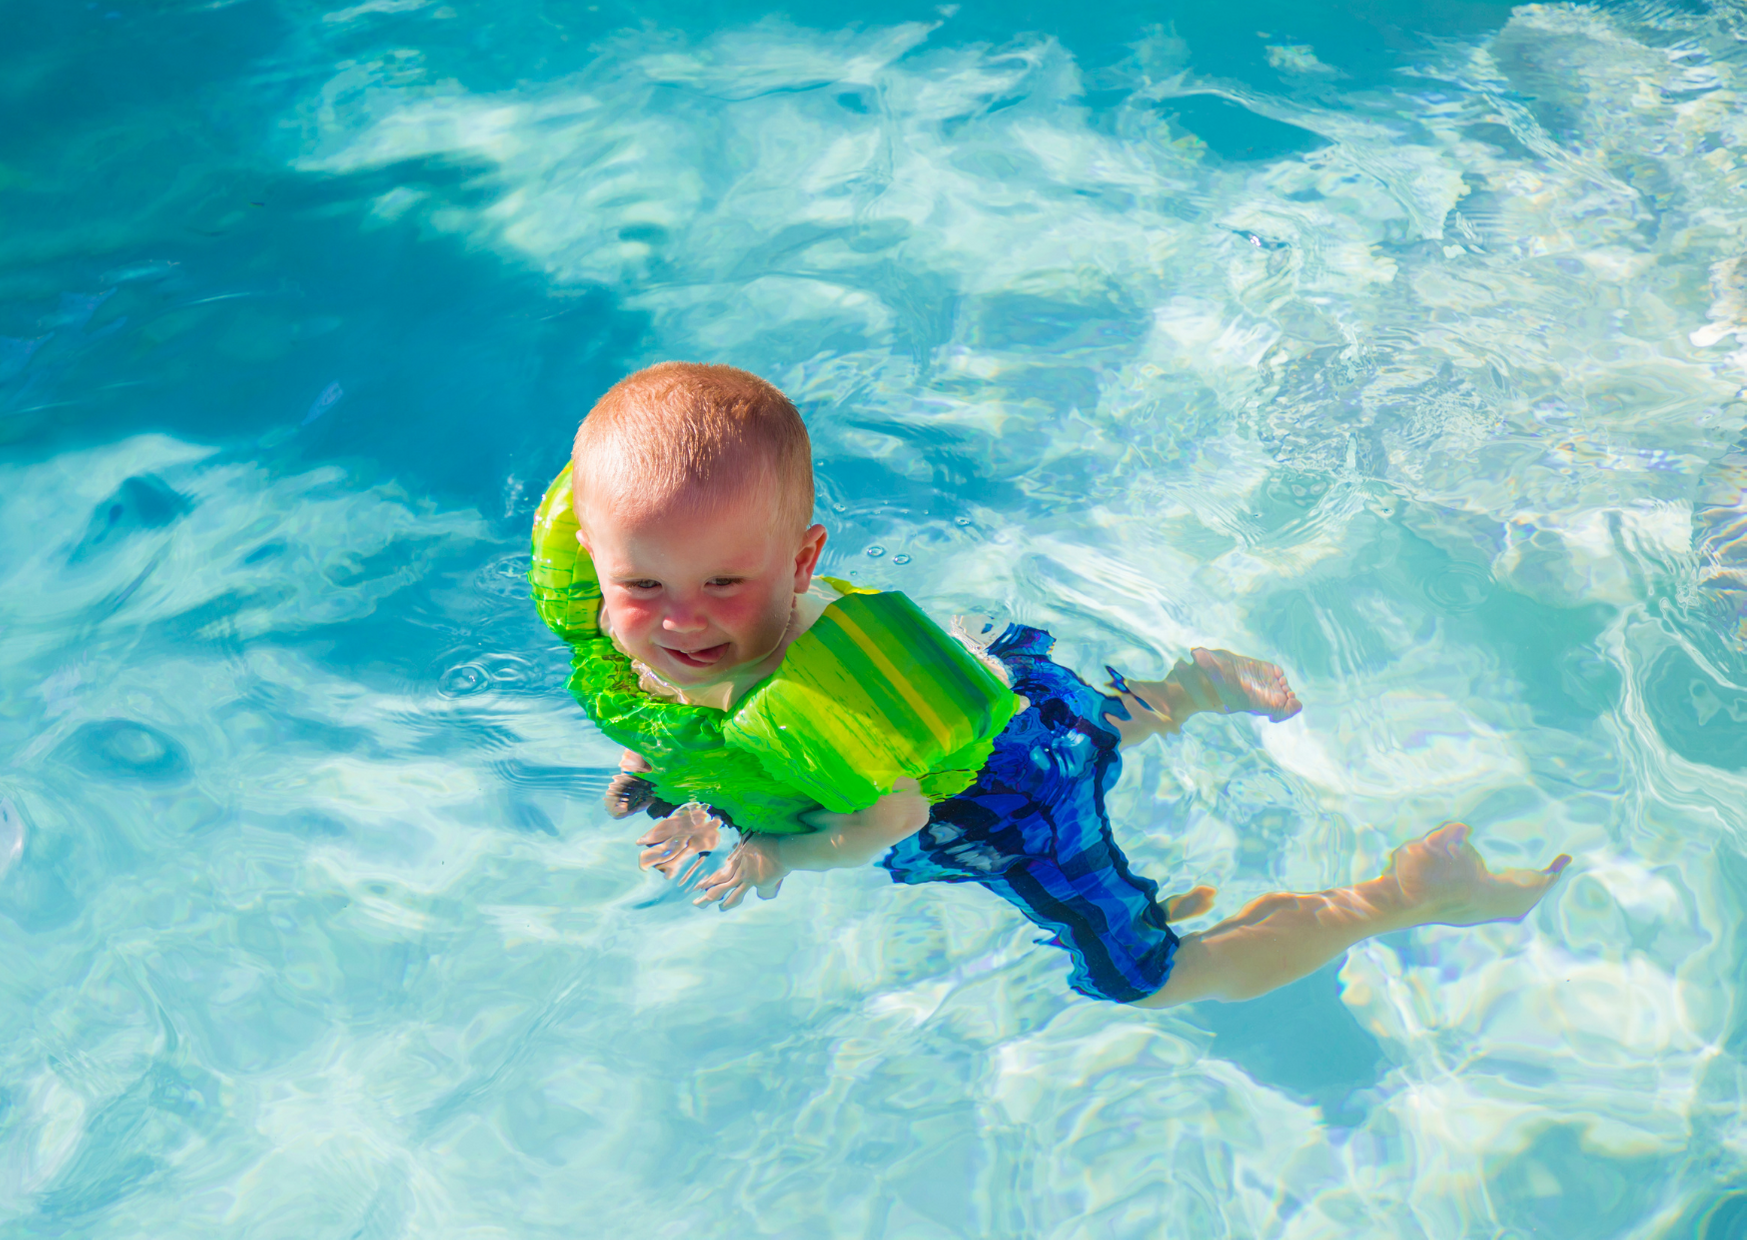 a toddler wearing a floaties while swimming in the pool